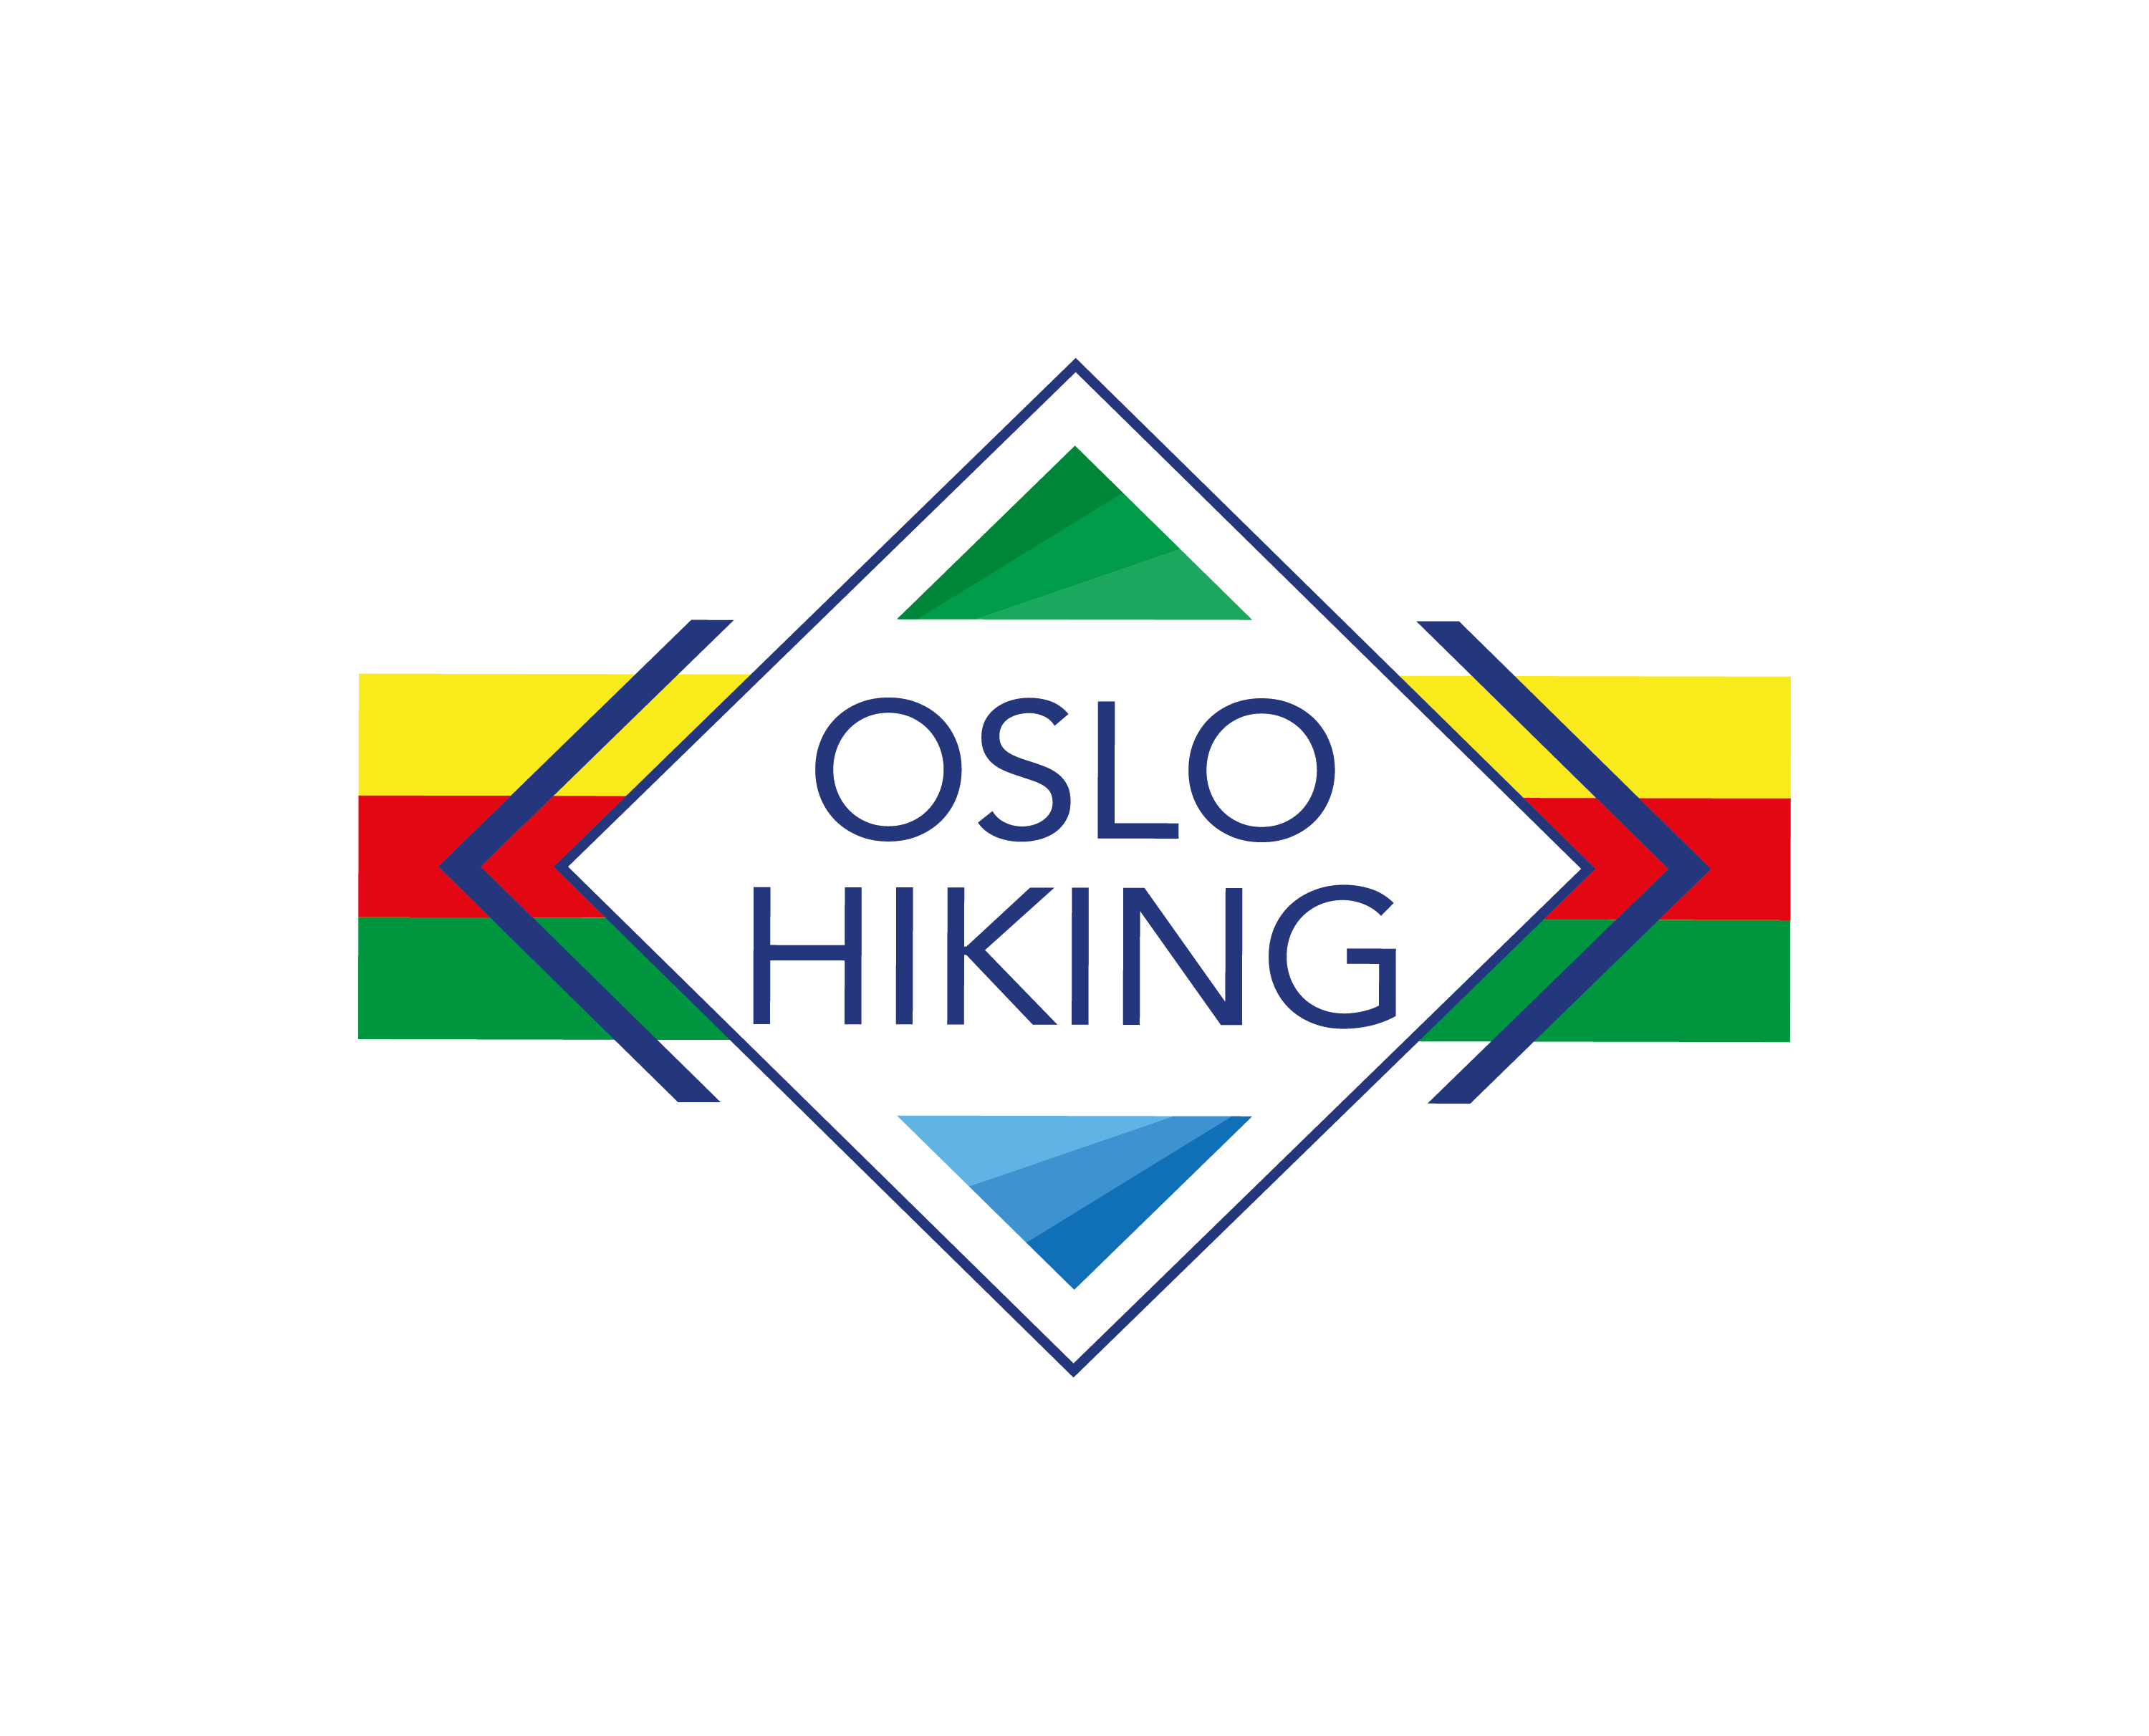 Oslo Hiking